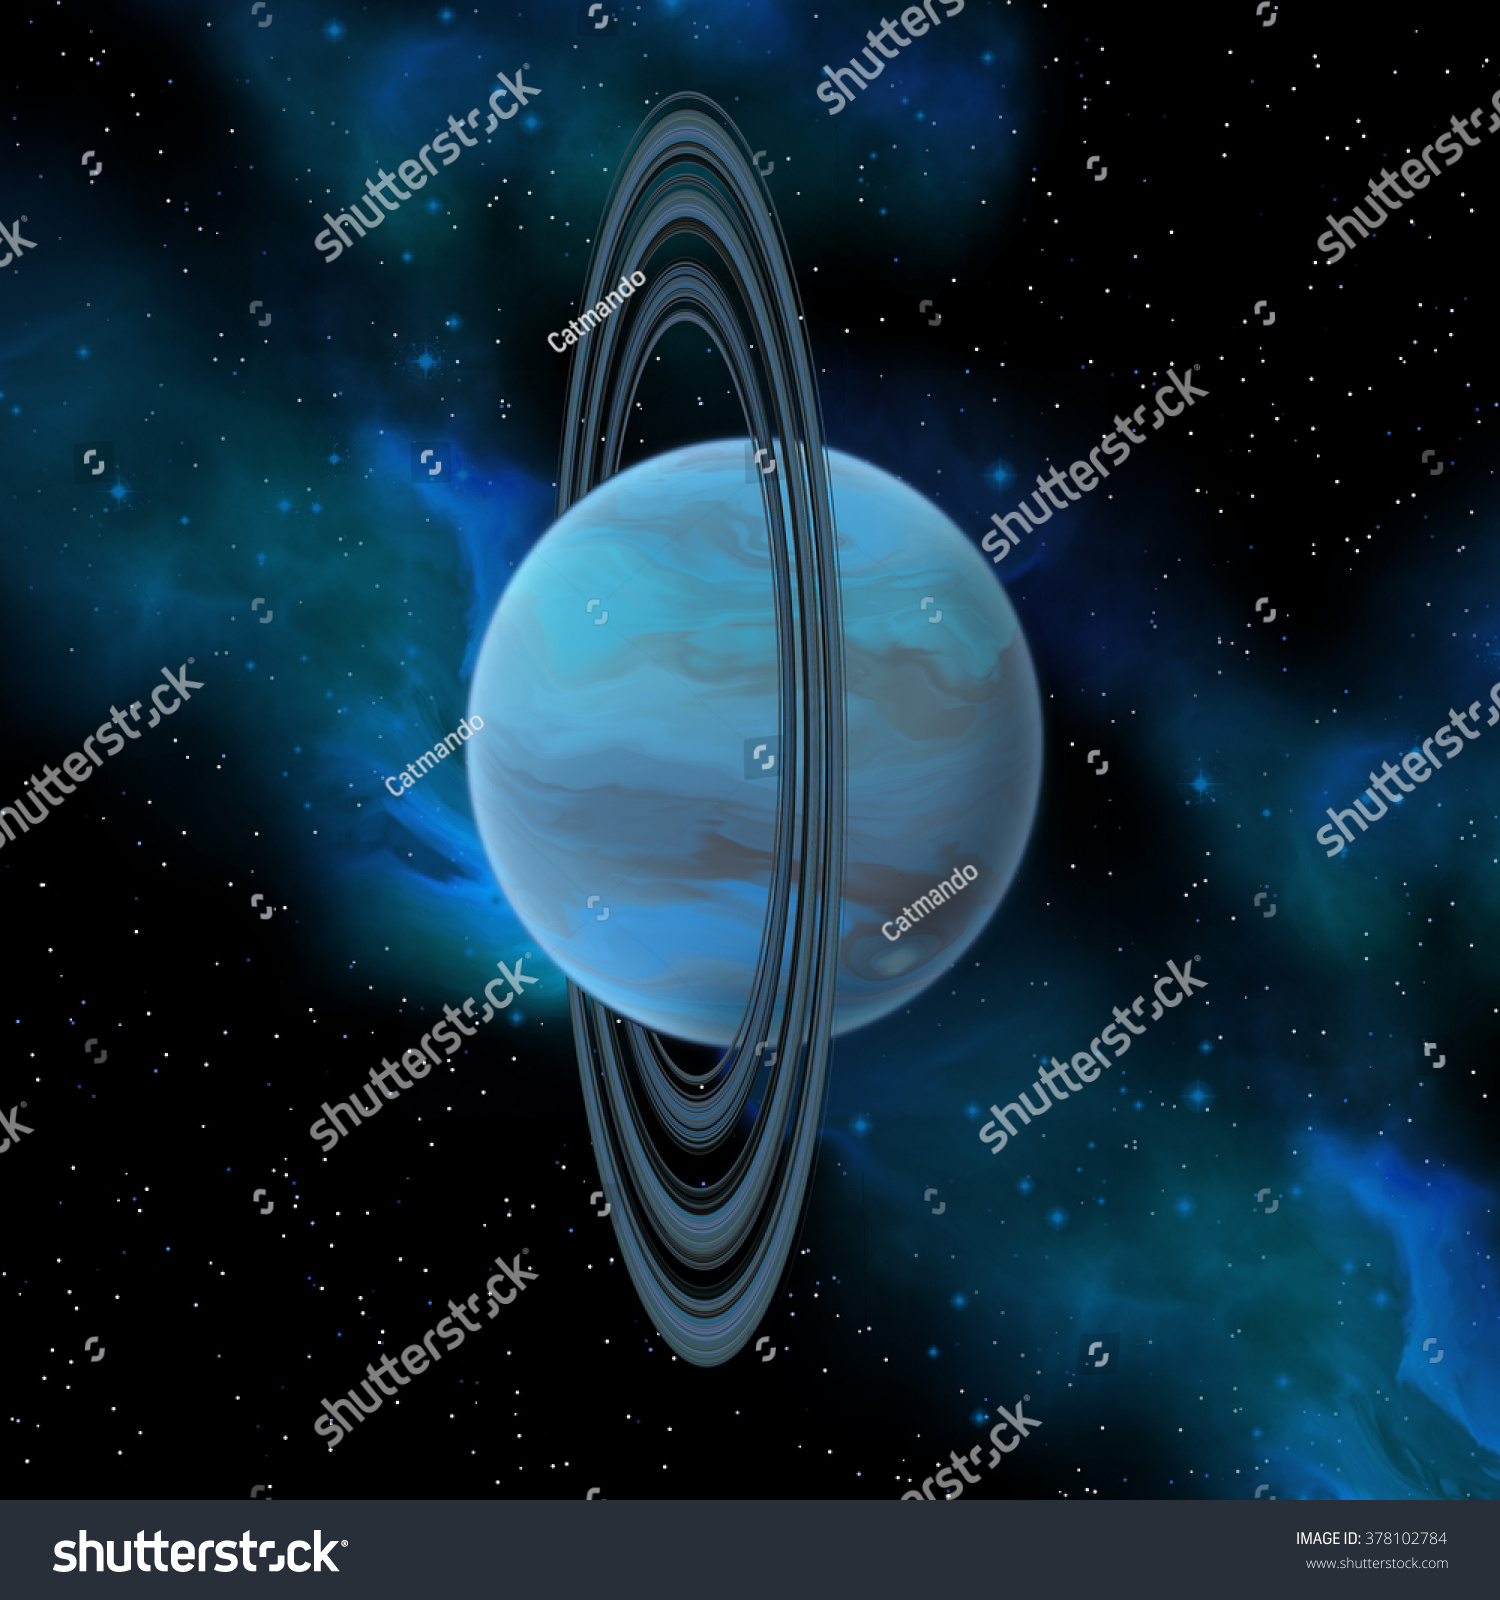 an overview of the seventh plant of our solar system uranus List of planets in solar system view source history comments (2) share which is the sun there are 8 planets, 4 gas giants and 4 terrestrial planets in our solar system planet picture name feature size uranus is the seventh planet from the sun uranus is similar in composition to.